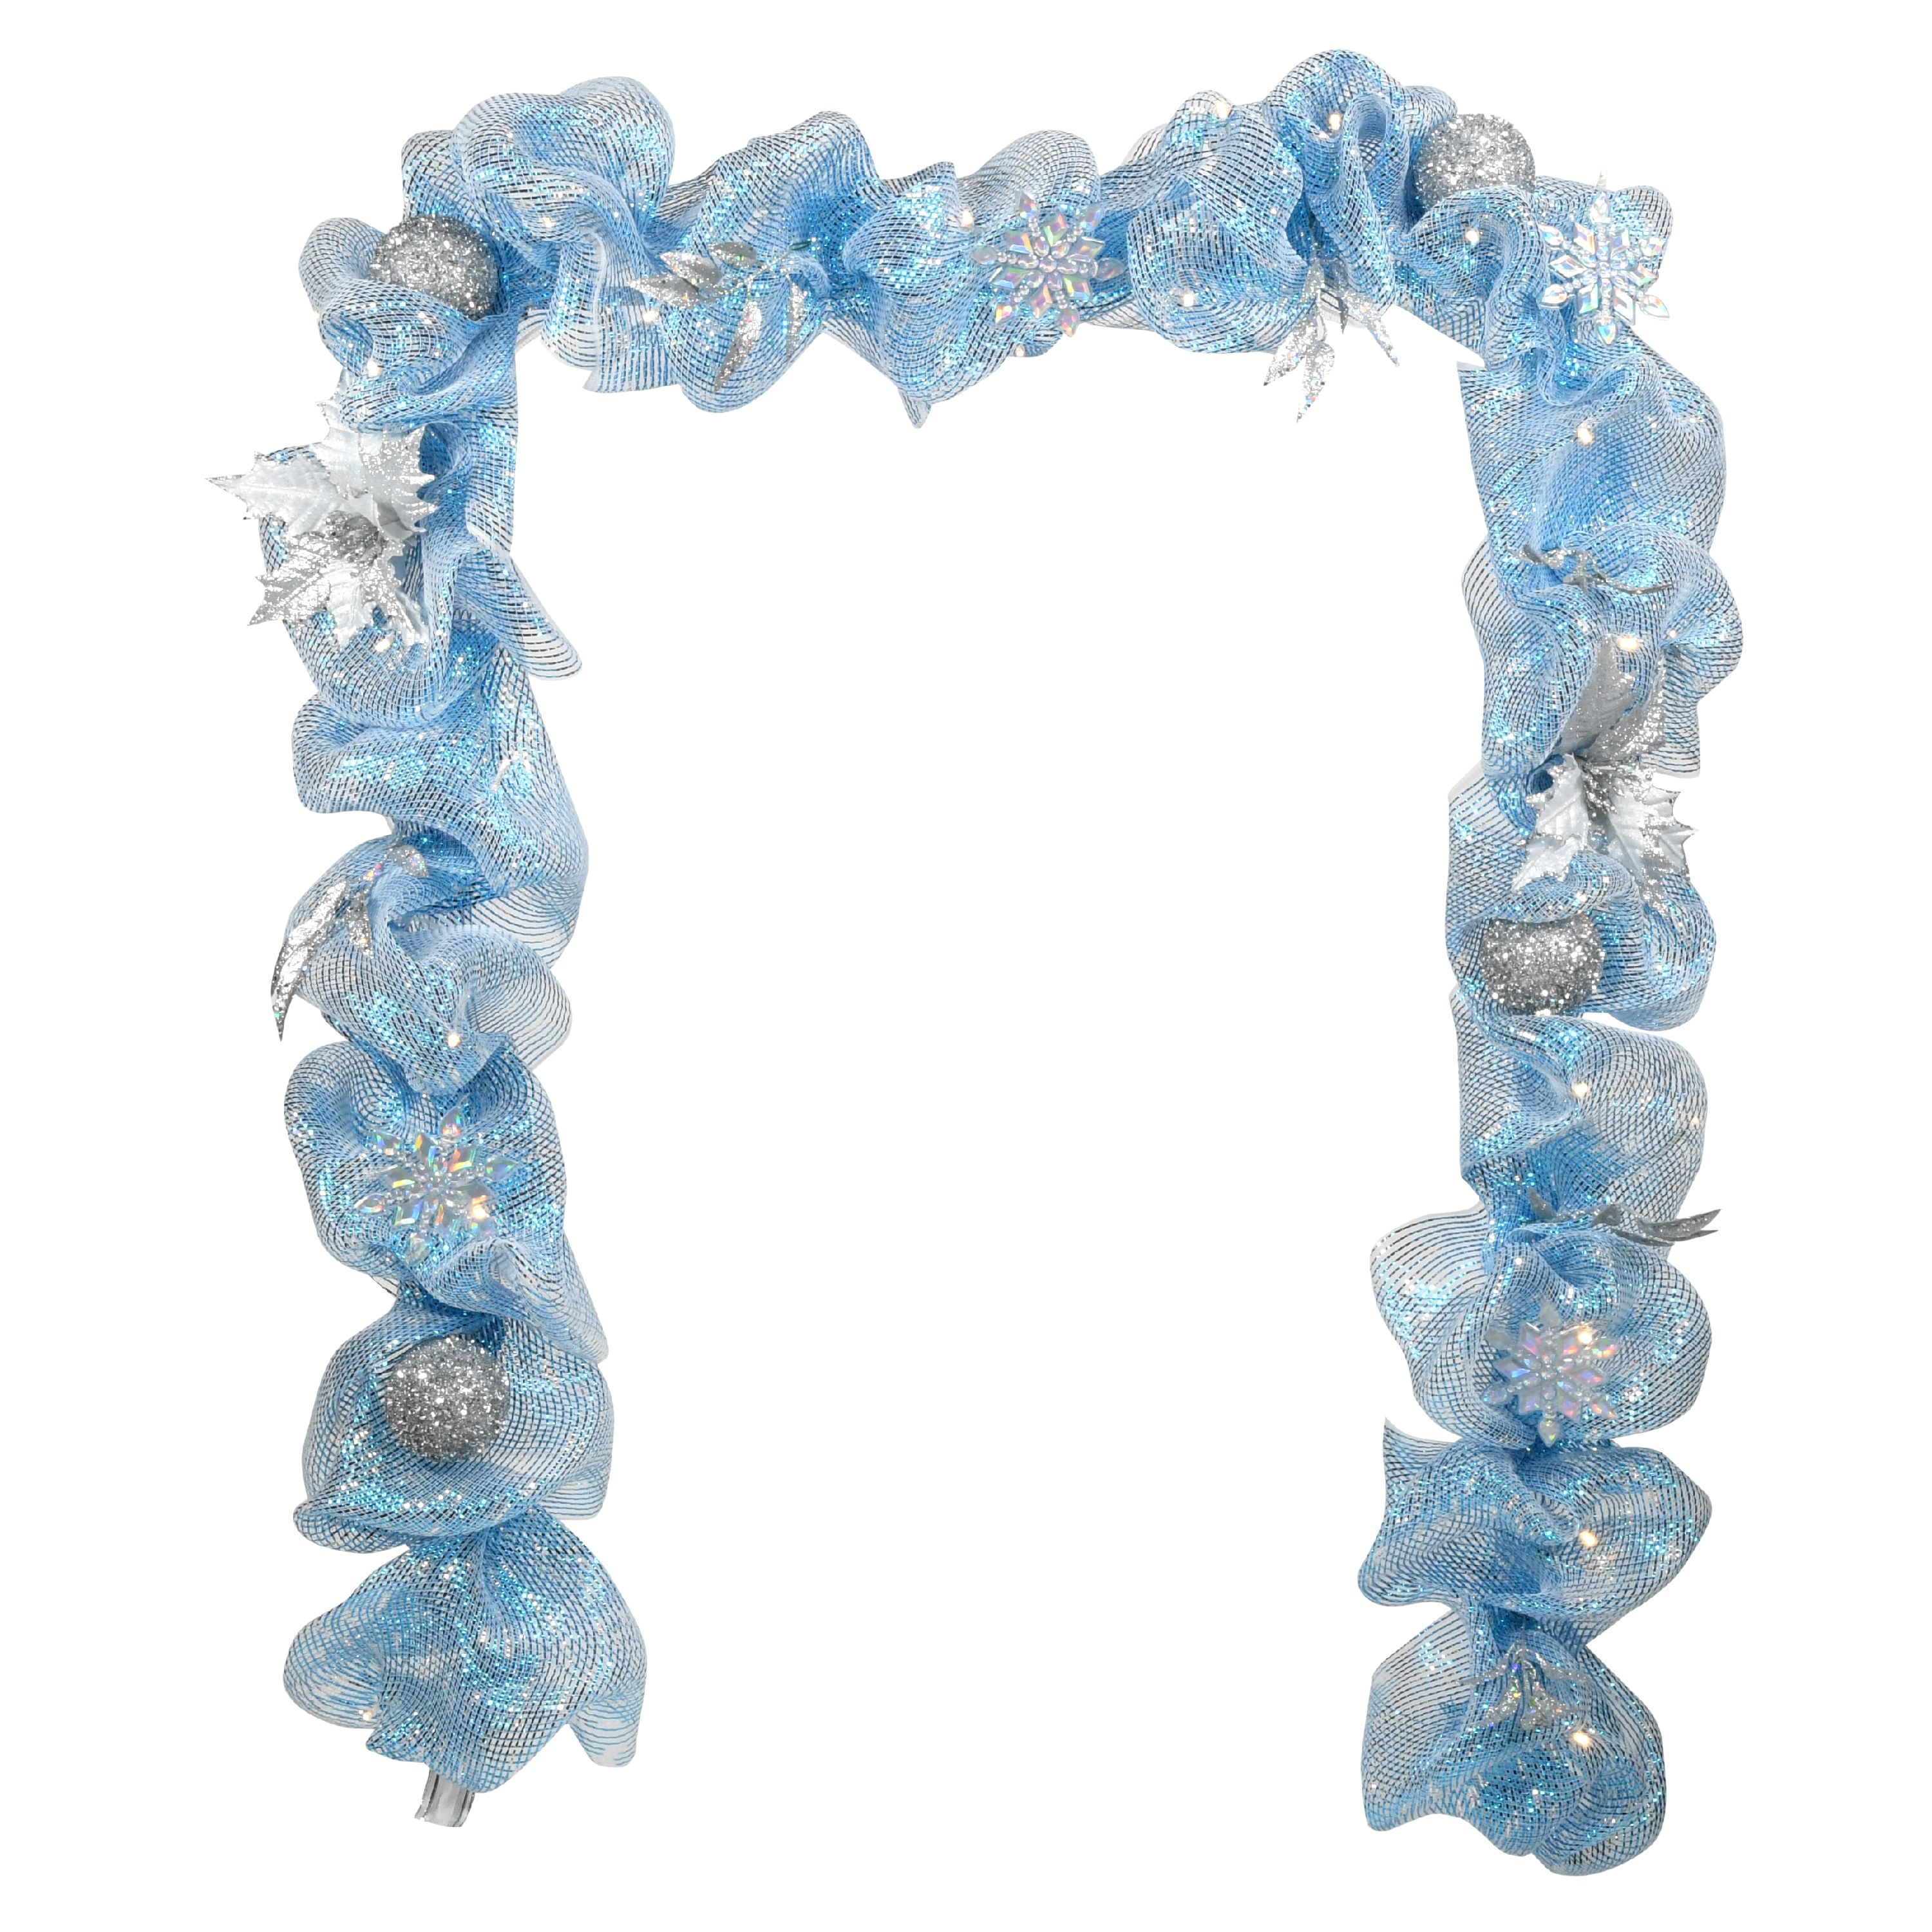 Lighted Mesh Garland, Blue, 9 feet